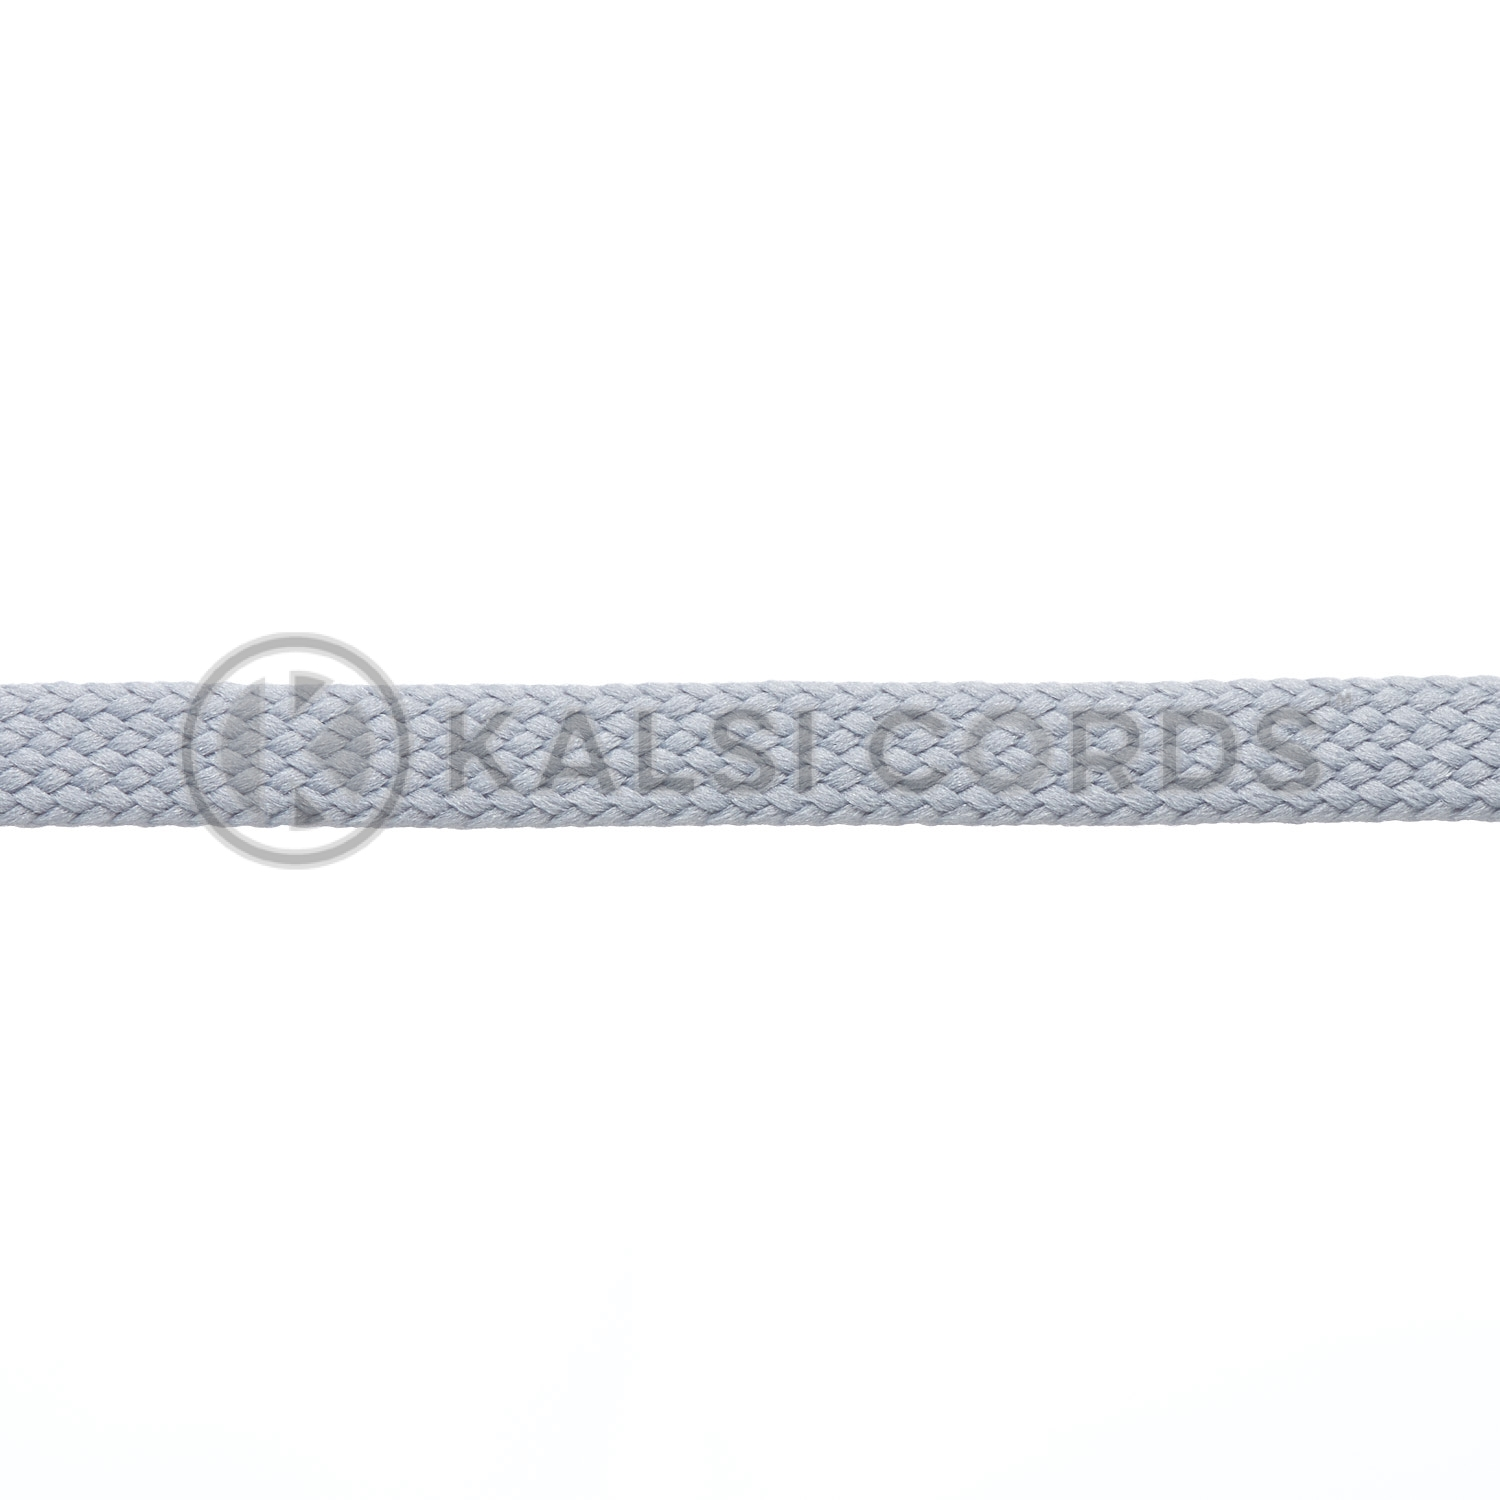 7mm Flat Shoe Laces Tubular Frosted Silver PG654 Kids Toddlers